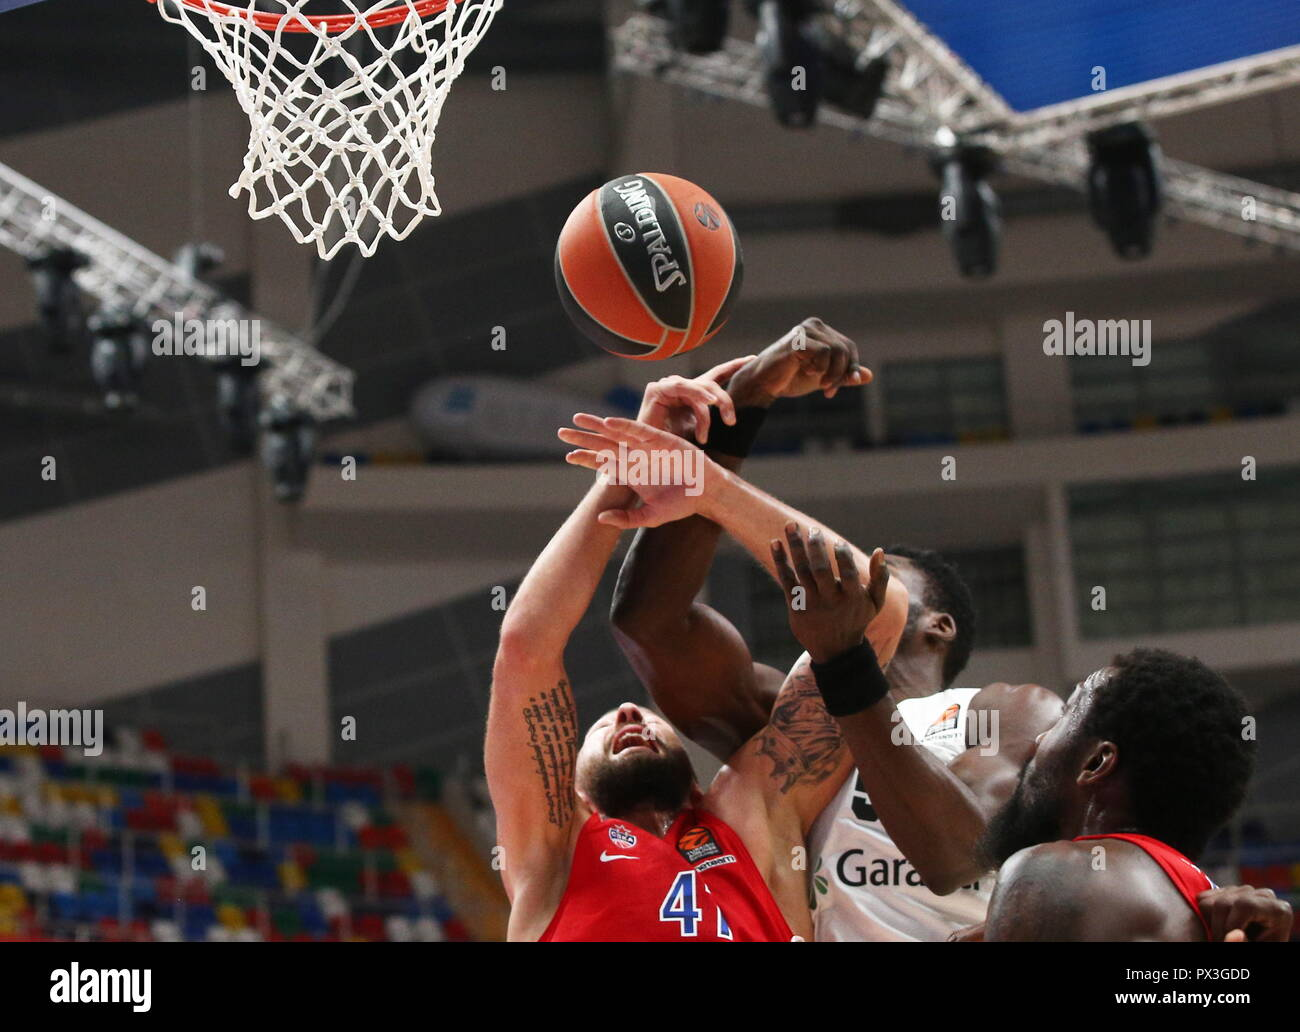 ATTENTION EDITORS! PLEASE, UPDATE THE SCORE IN CAPTIONS FOR TASS IMAGES BY ALEXANDER SCHERBAK, DATED 18 OCTOBER 2018, TITLED '2018/2019 Euroleague: CSKA Moscow 80 - 75 Darussafaka Tekfen Istanbul' OR '2018/2019 Euroleague: CSKA Moscow vs Darussafaka Tekfen Istanbul'; THE SCORE HAS BEEN ALTERED BY EUROLEAGUE OFFICIALS.  CORRECTED TITLE: '2018/2019 Euroleague: CSKA Moscow 79 - 75 Darussafaka Tekfen Istanbul'.  EXAMPLE OF CORRECTED CAPTION: 'MOSCOW, RUSSIA - OCTOBER 18, 2018: CSKA Moscow's Nikita Kurbanov (L) and Darussafaka Tekfen Istanbul's Micheal Eric (2nd R) in a 2018/2019 Euroleague Regular - Stock Image